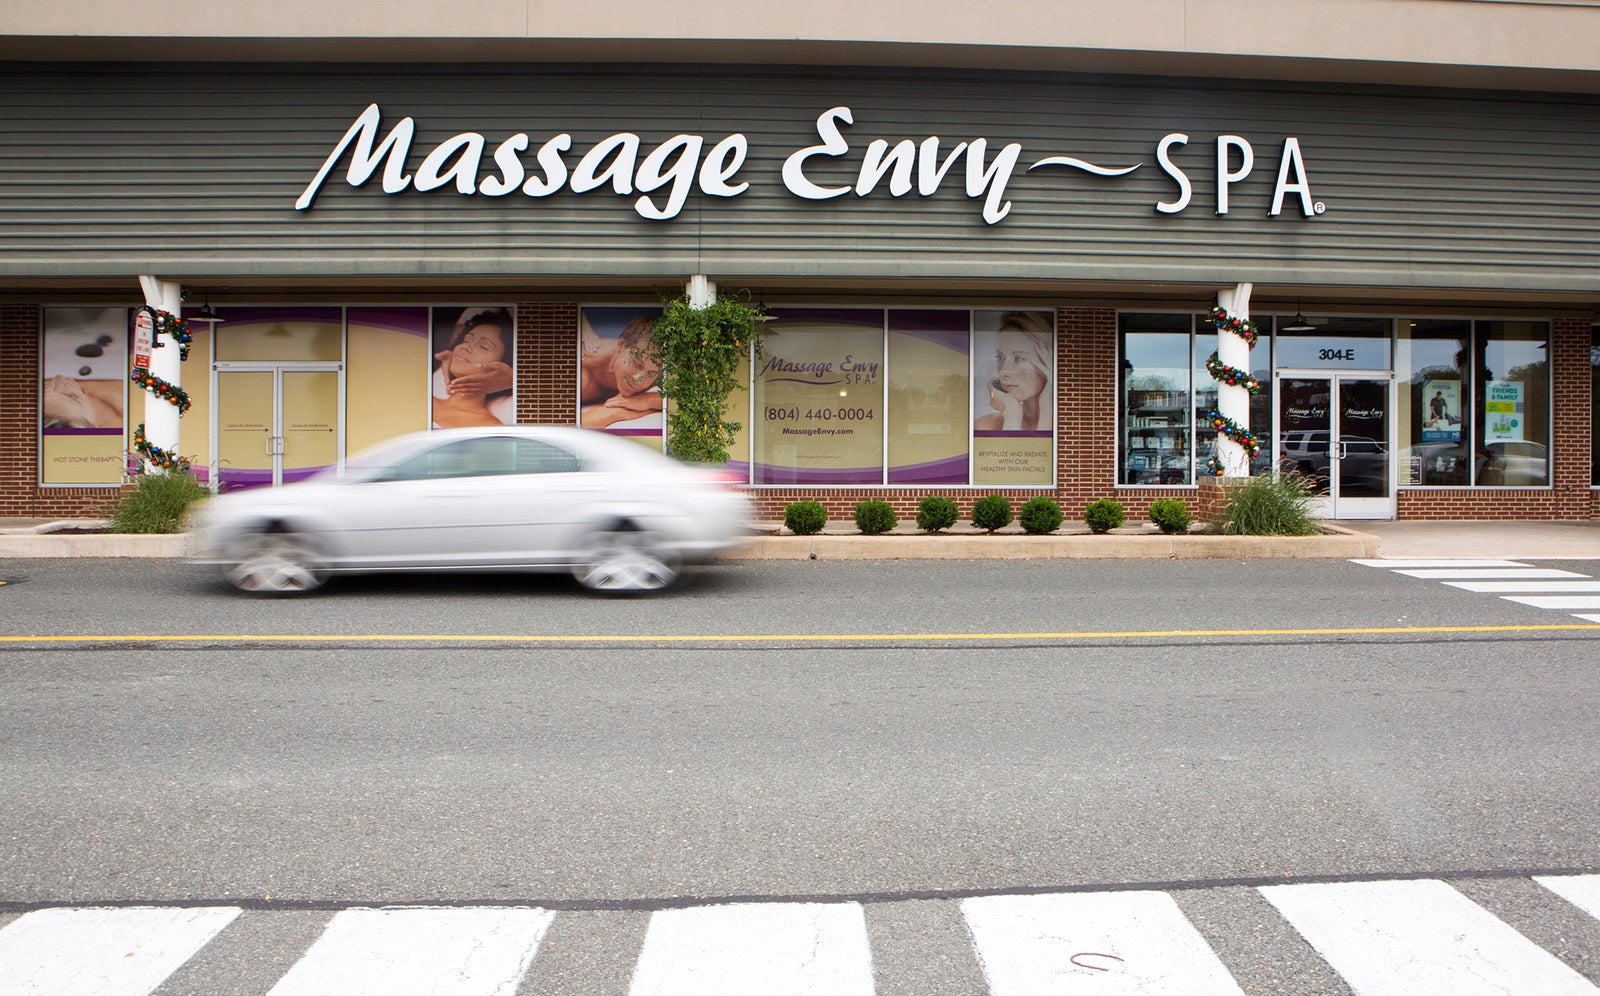 A Massage Envy storefront in Richmond, Virginia.